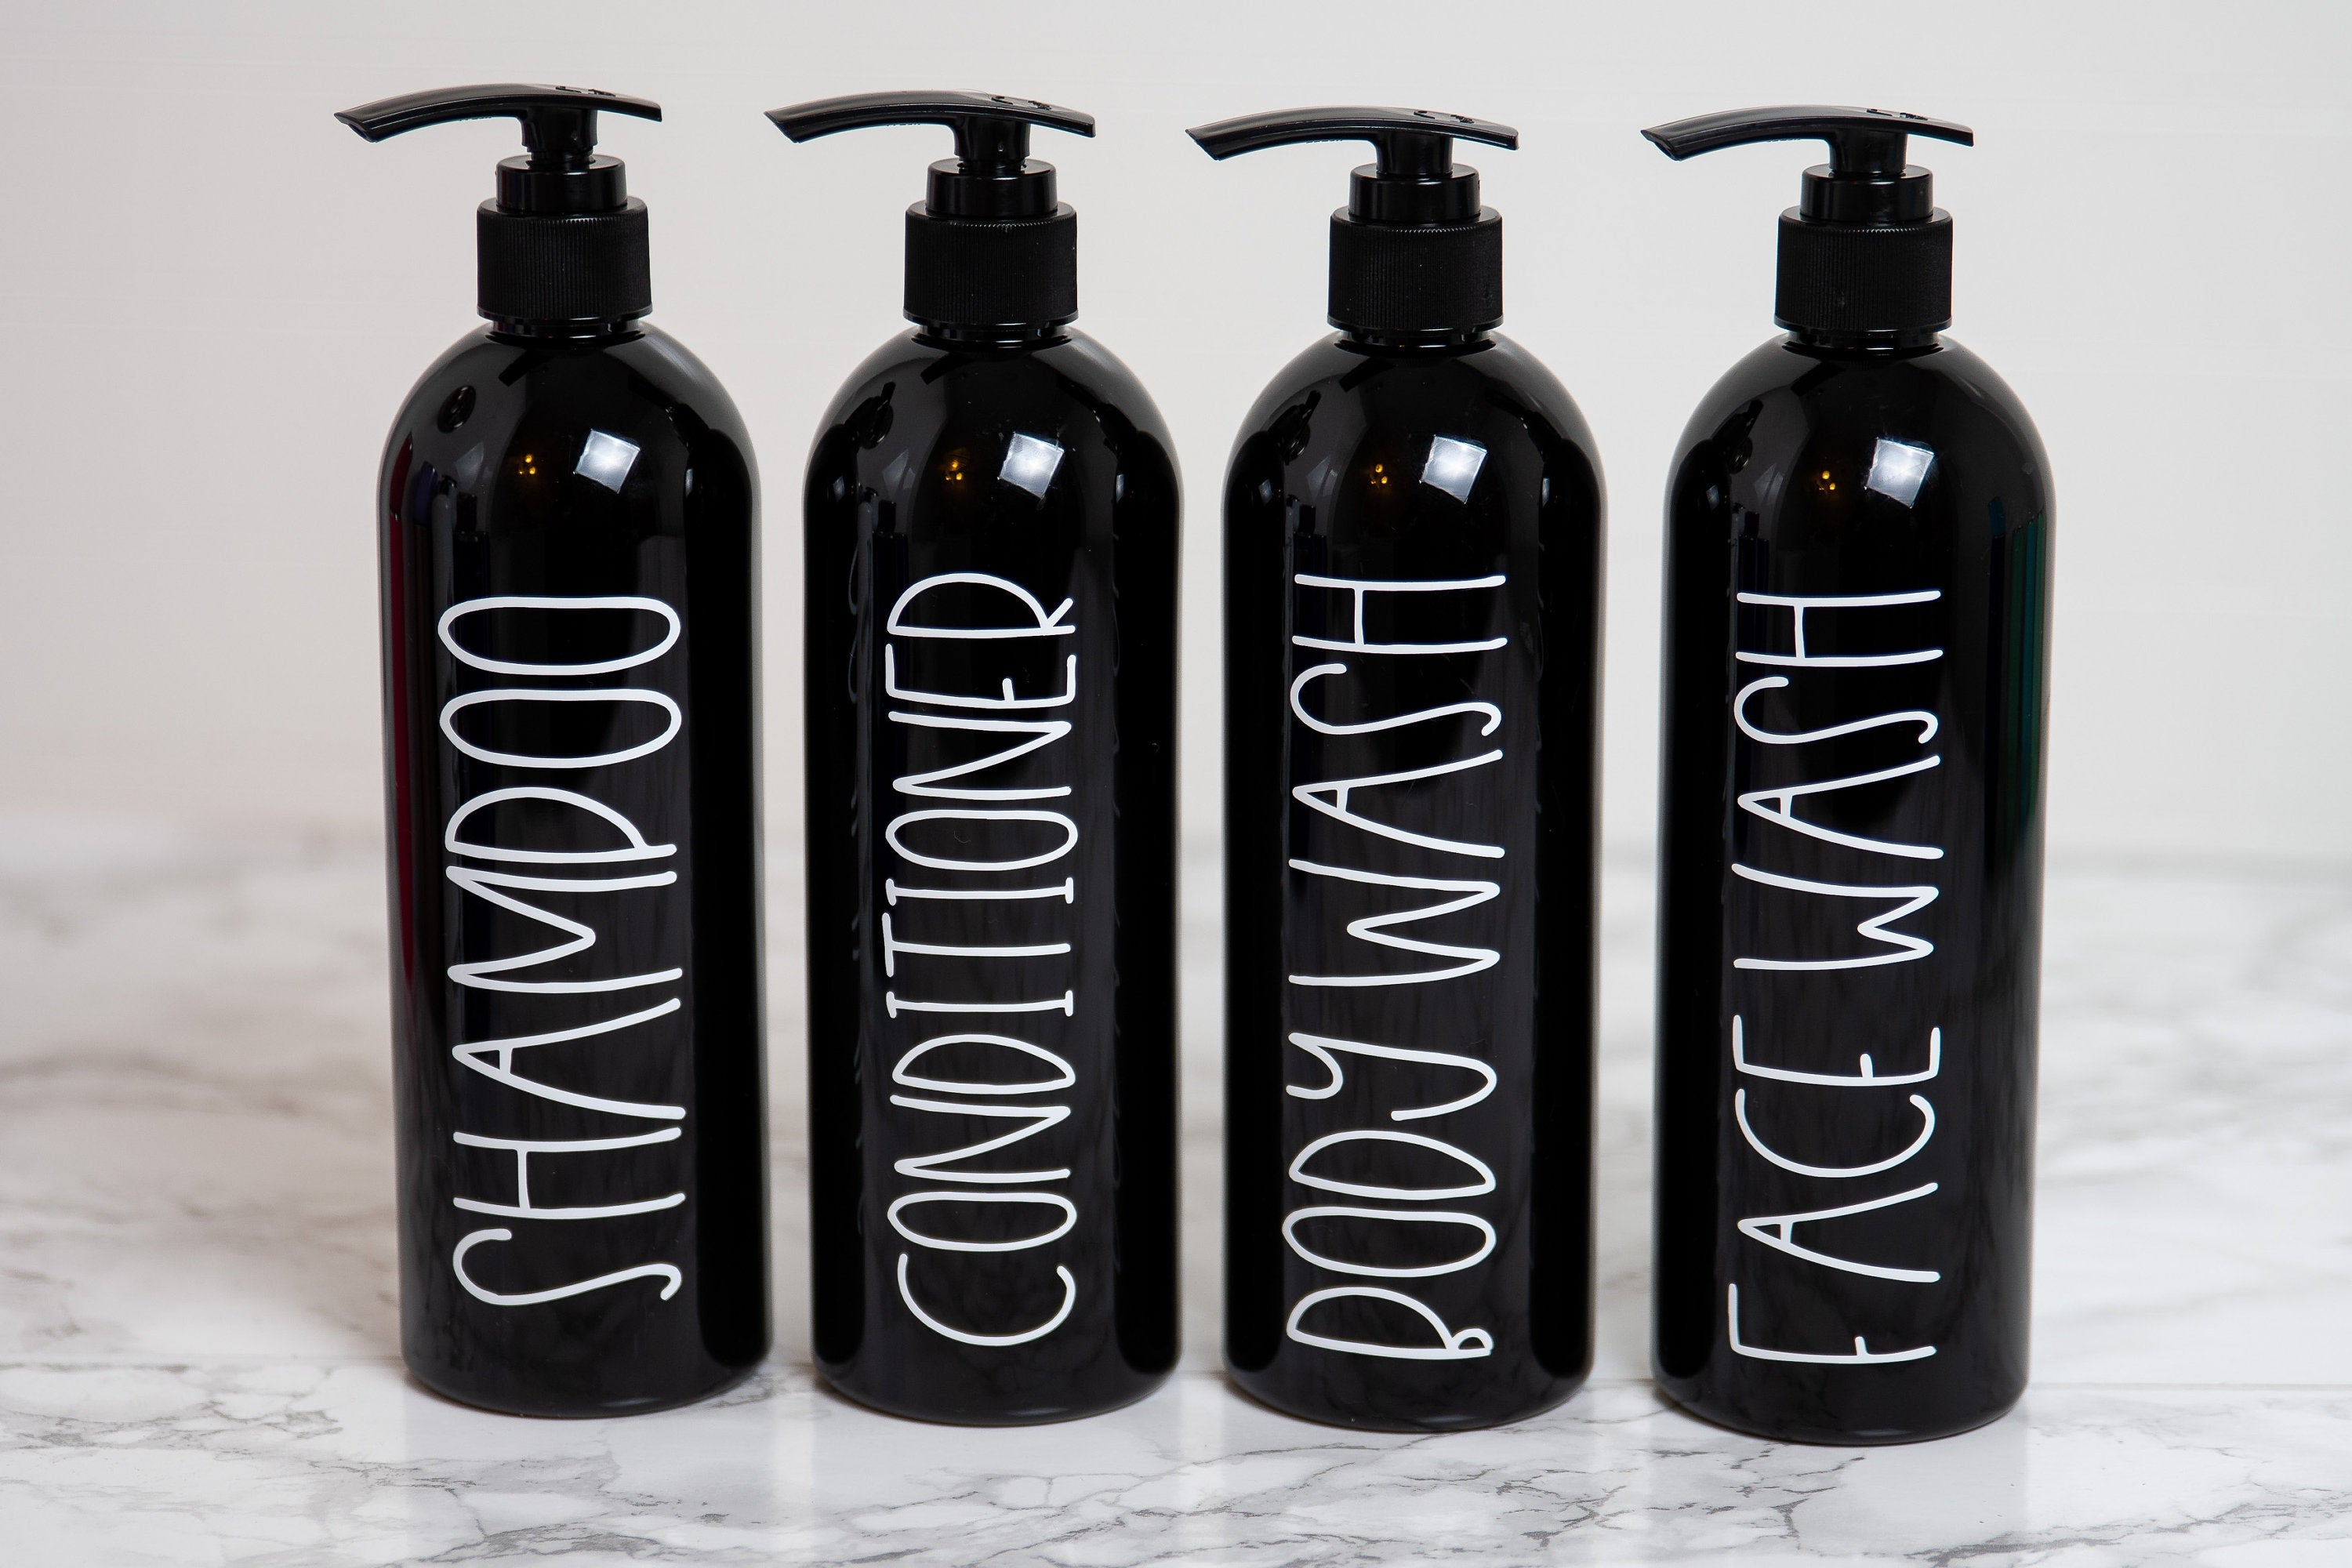 Black Shampoo and Conditioner Bottles Set, Bathroom Shower Set, Guest Bathroom Decor, Bathroom Storage and Organization